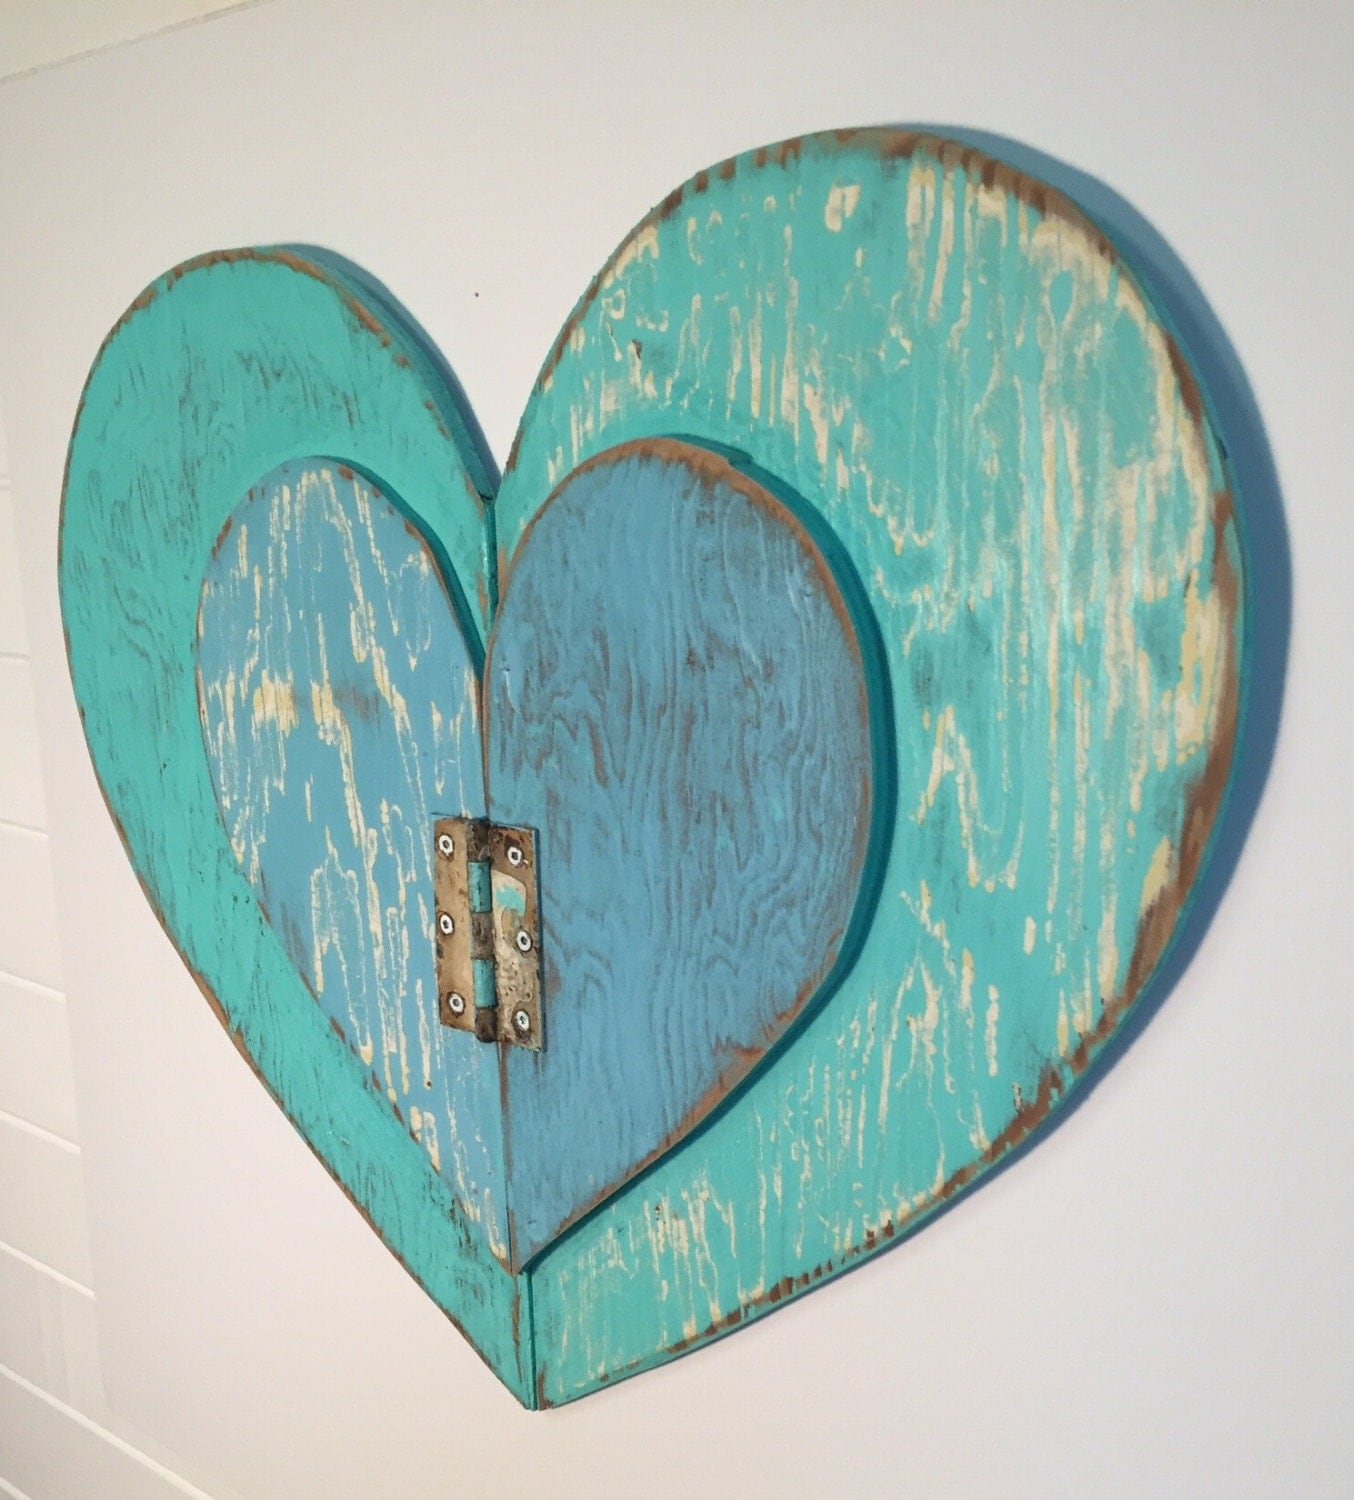 Large wooden heart wall art gallery canvas pictures for Wooden heart wall decor